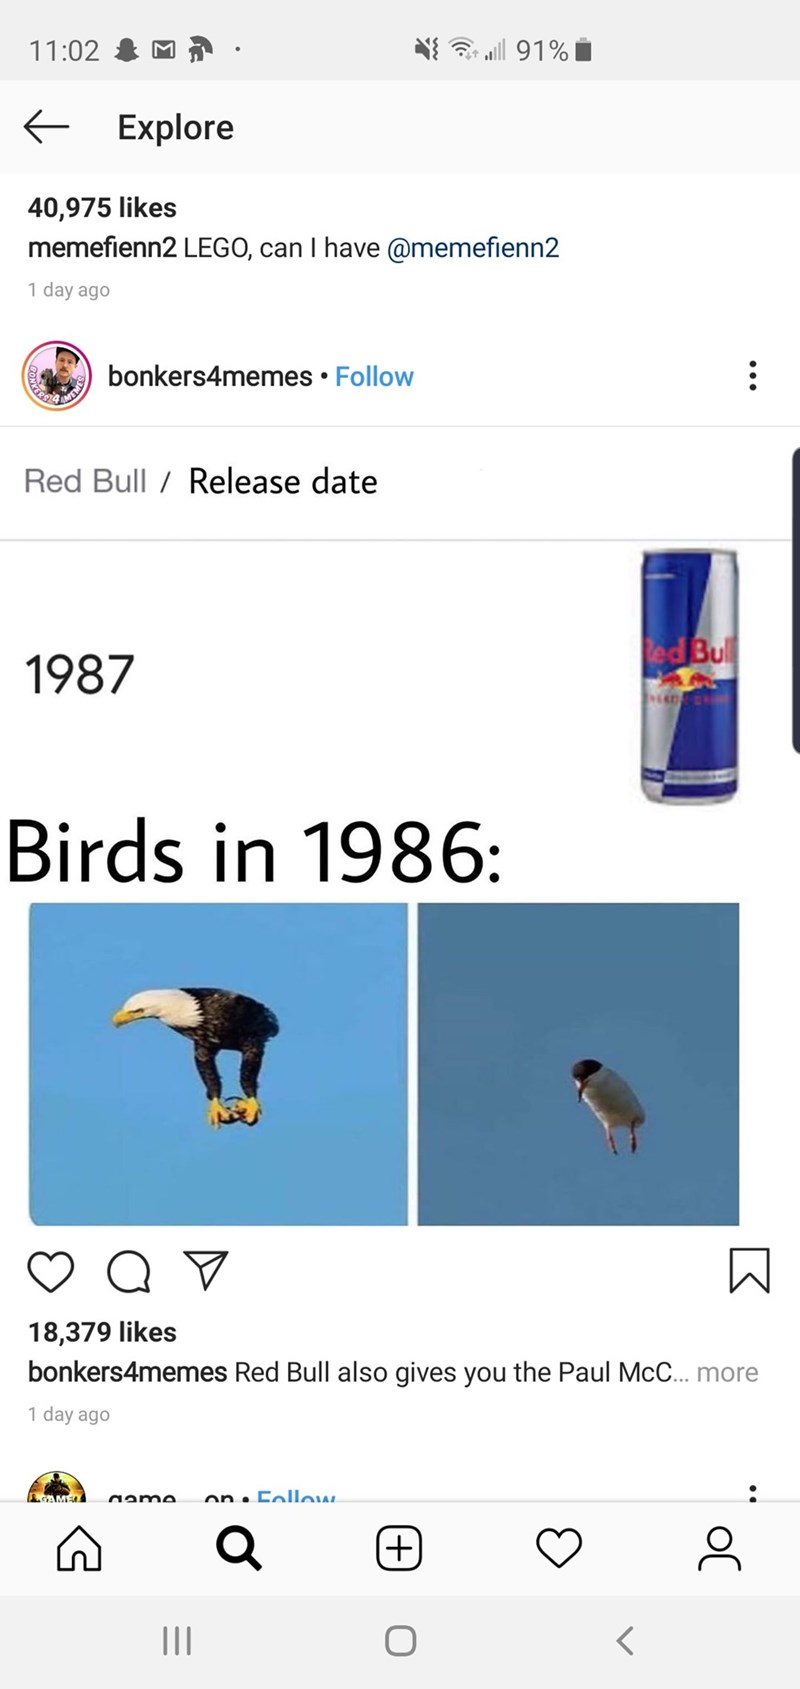 meme - Font - l91% 11:02 Explore 40,975 likes memefienn2 LEGO, can I have @memefienn2 1 day ago bonkers4memes Follow KERS AMEMES Red Bull/ Release date led Bul 1987 Birds in 1986: 18,379 likes bonkers4memes Red Bull also gives you the Paul McC.. more 1 day ago GAMEL on CoIlow (+